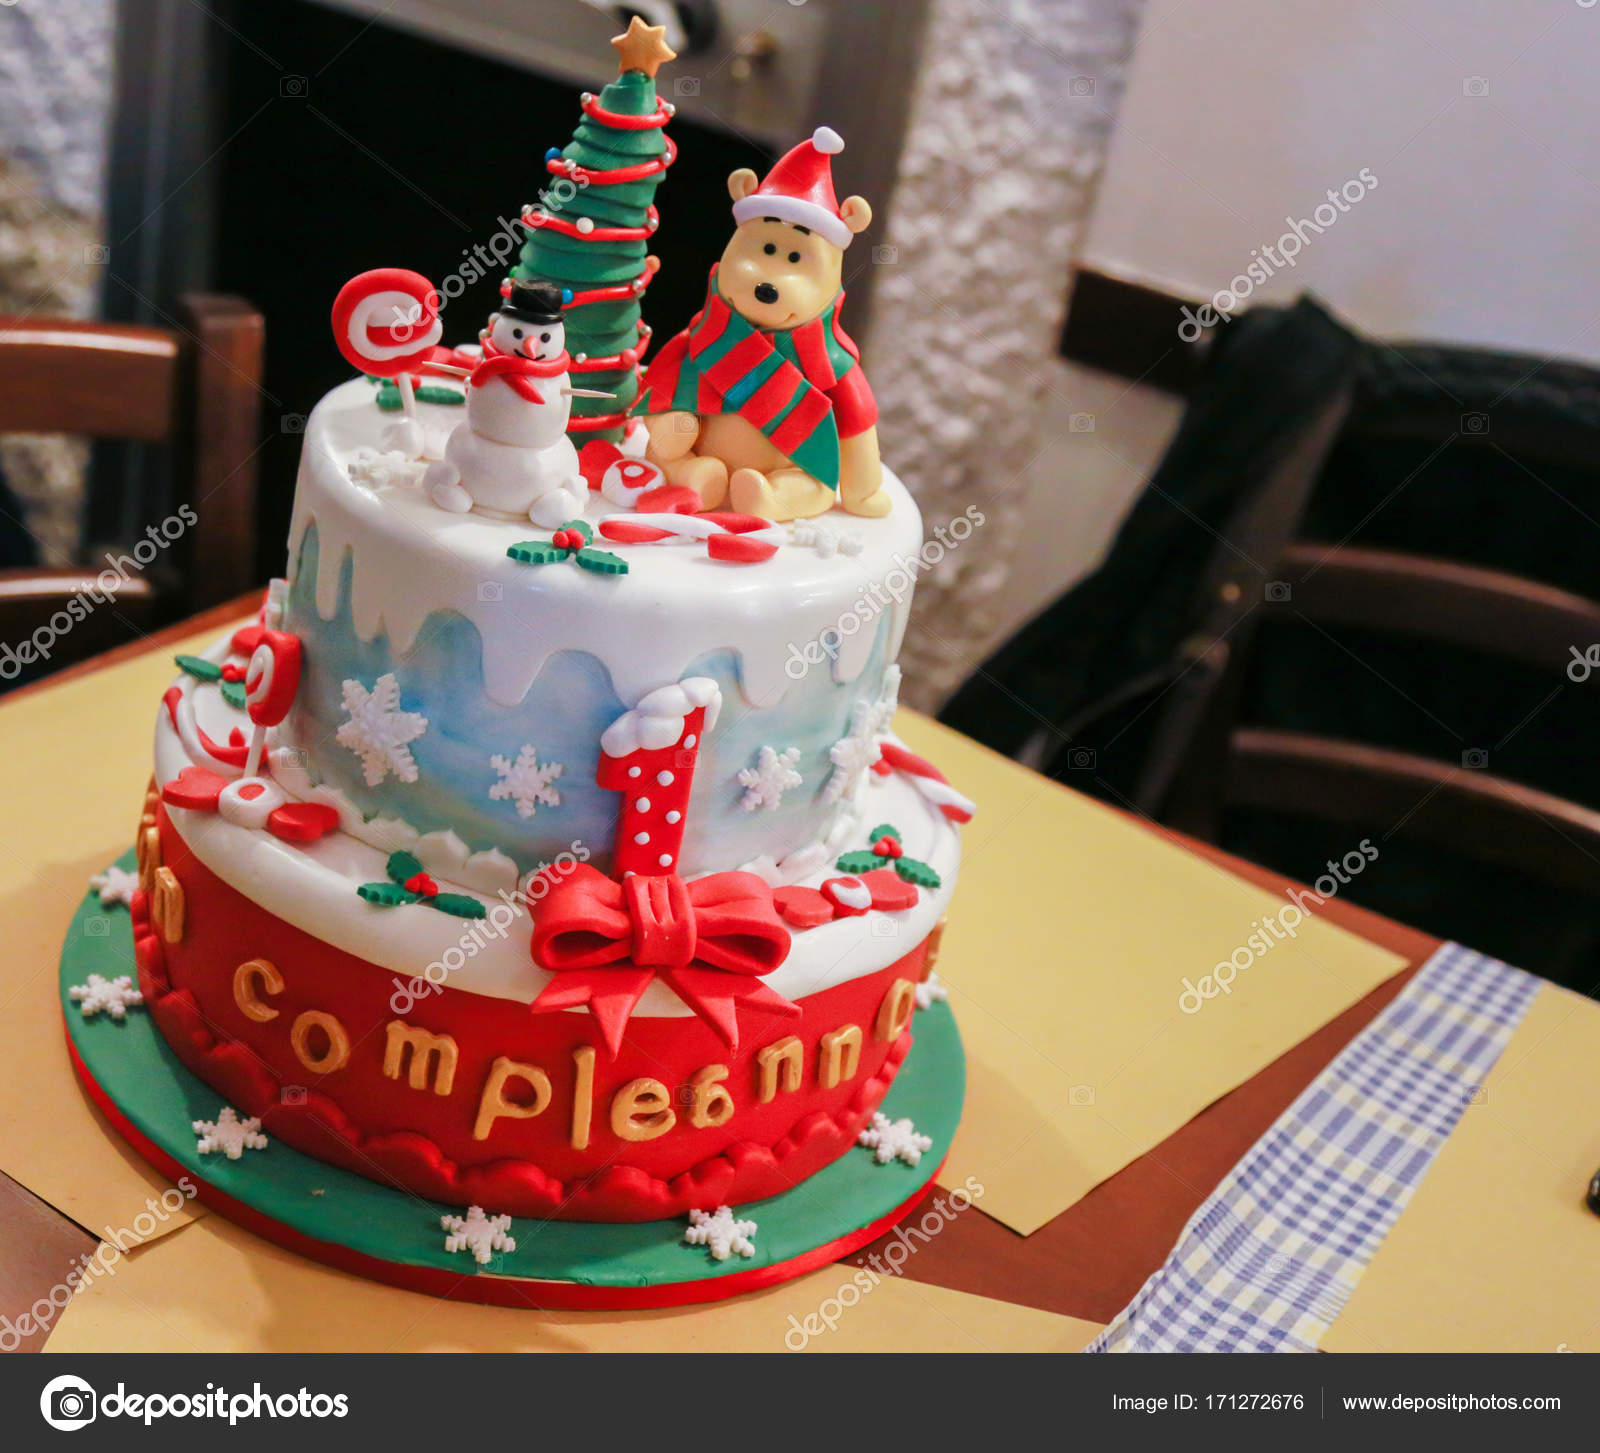 Astonishing Birthday Cake For Christmas Stock Photo C Ficio74 171272676 Personalised Birthday Cards Veneteletsinfo